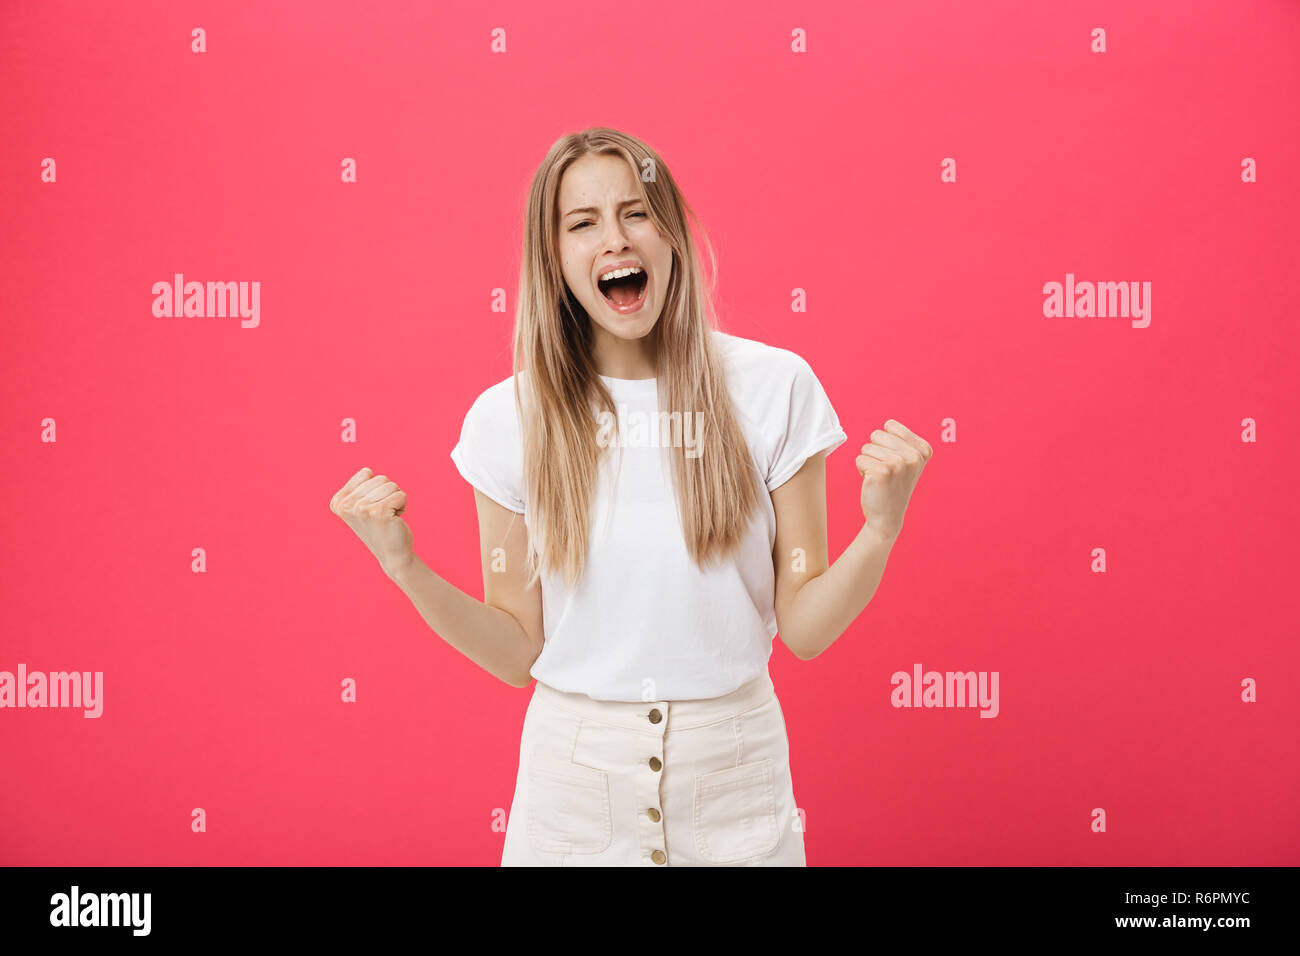 Young woman getting angry ,crazy and shouting isolated on a pink background. - Stock Image